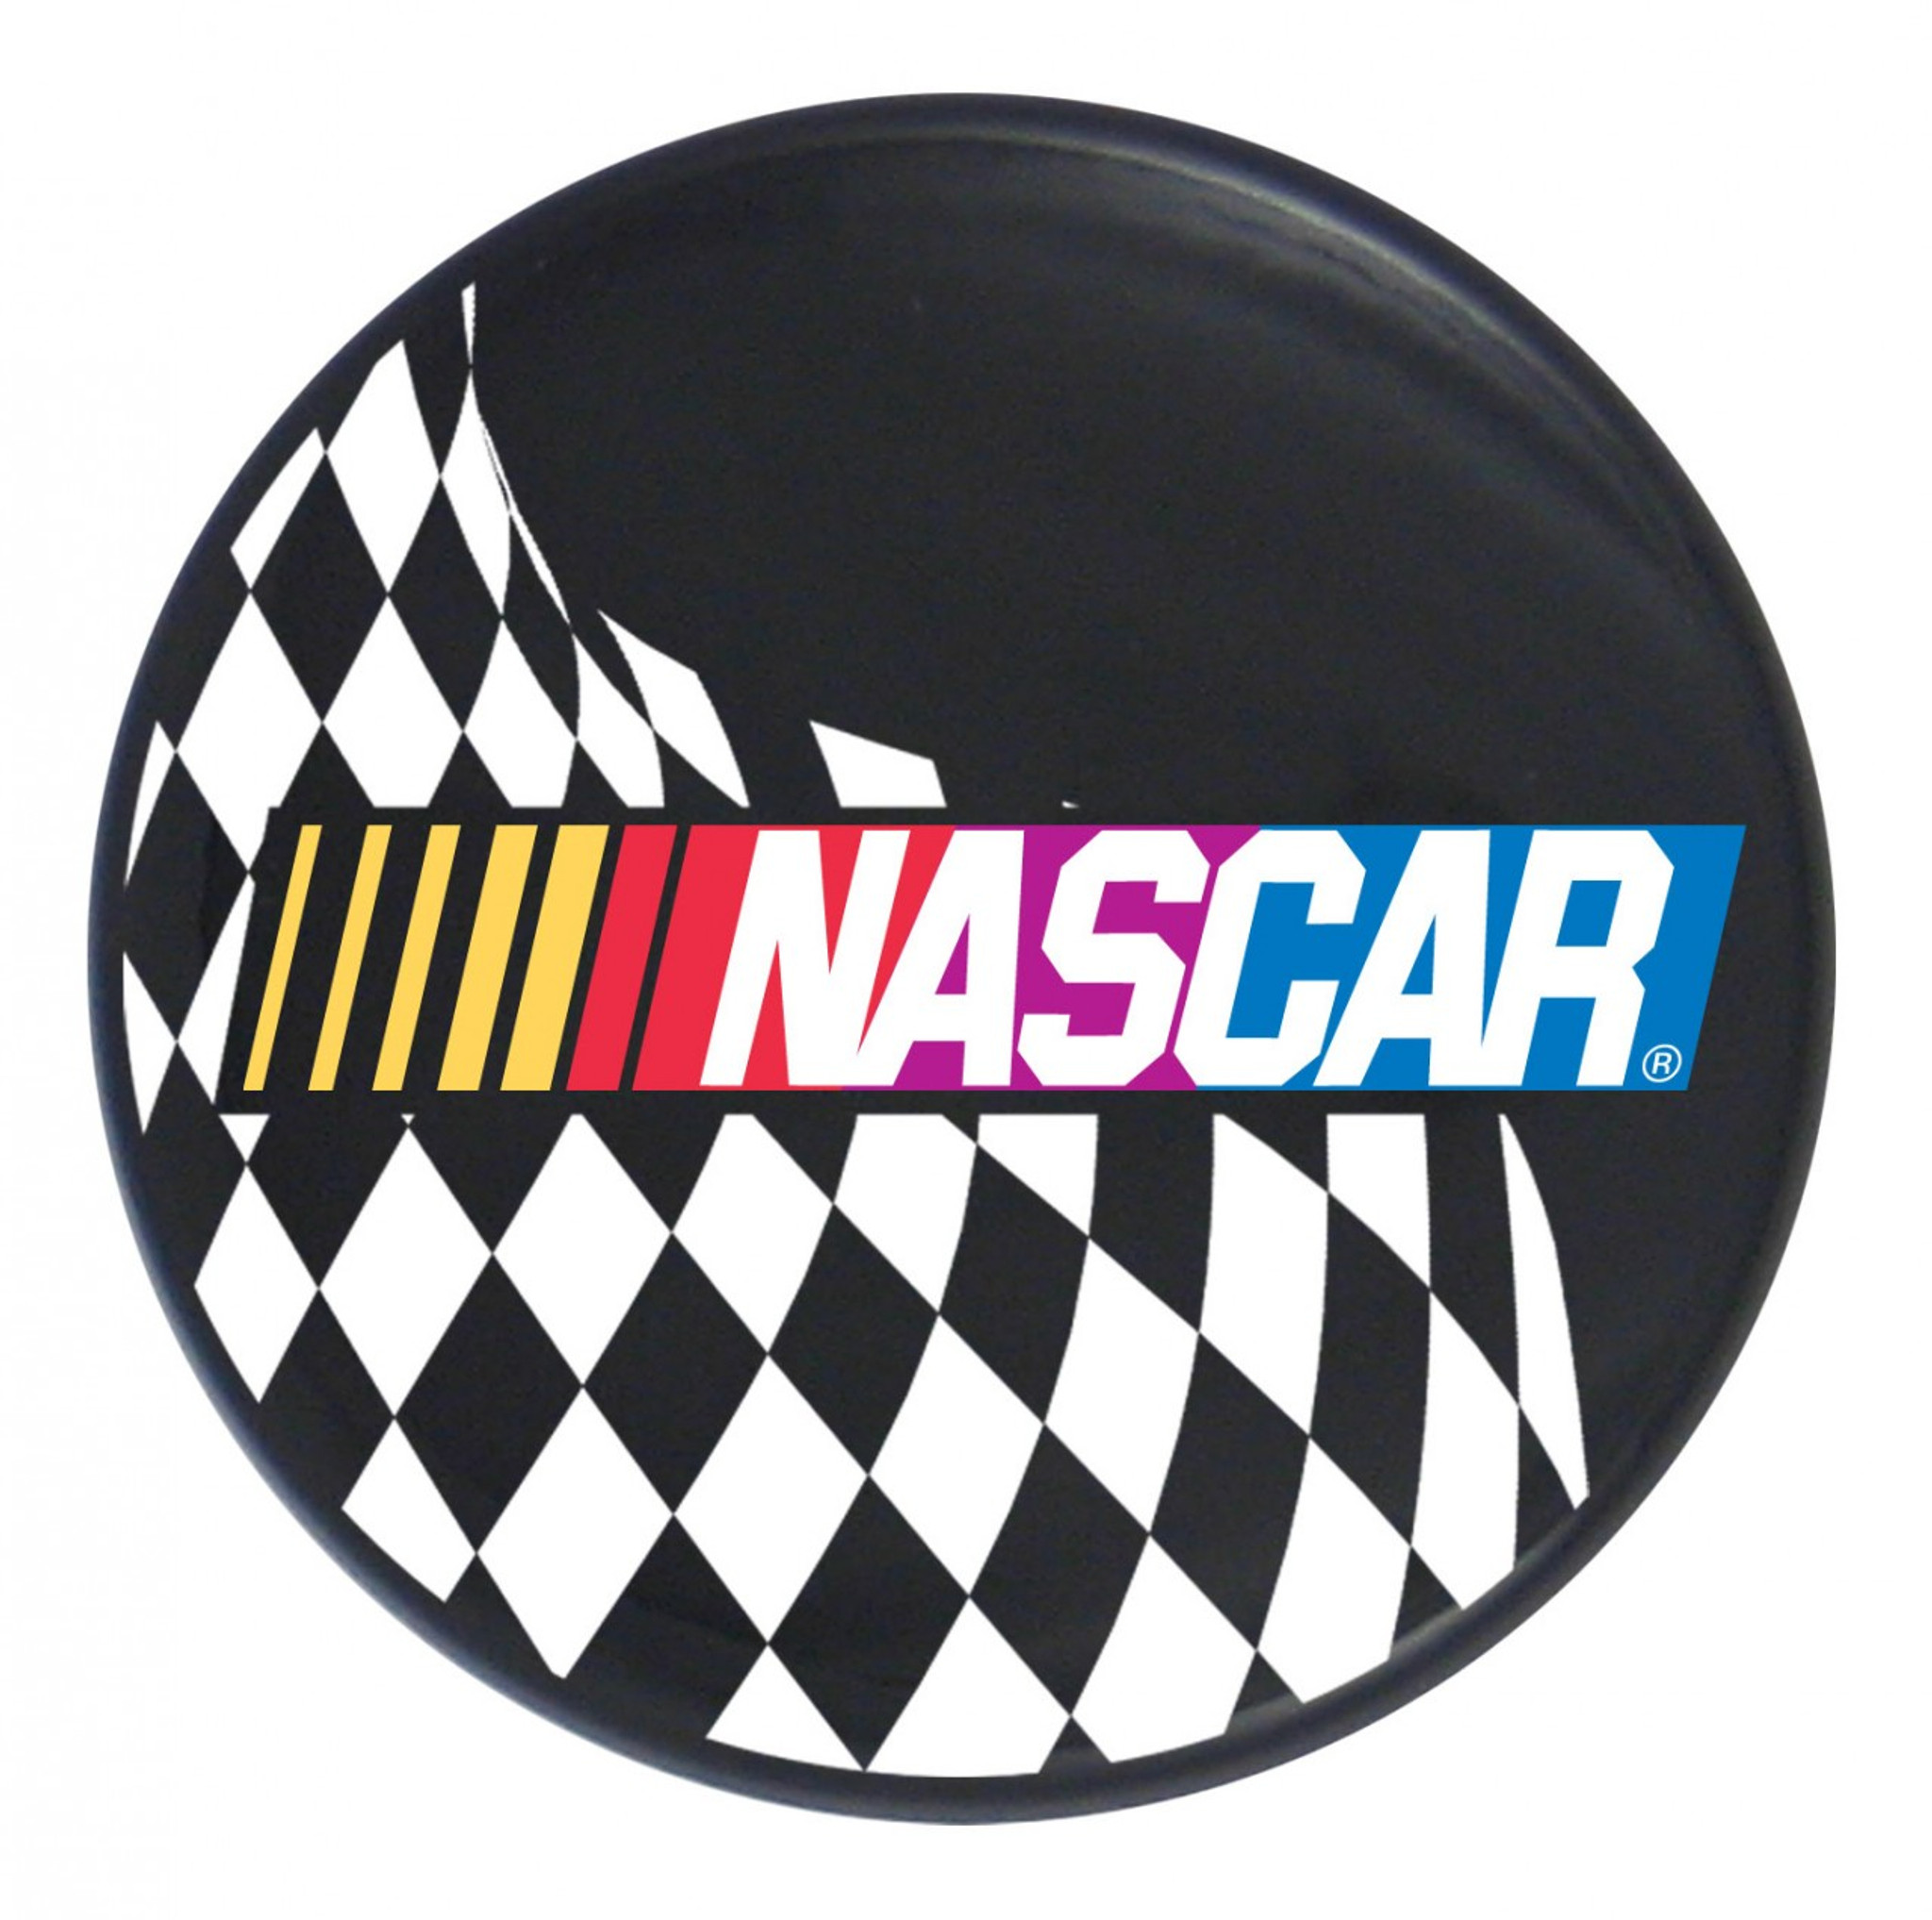 nascar logo w checkered flag on black steering creations inc rh steeringcreations com nascar logo pictures